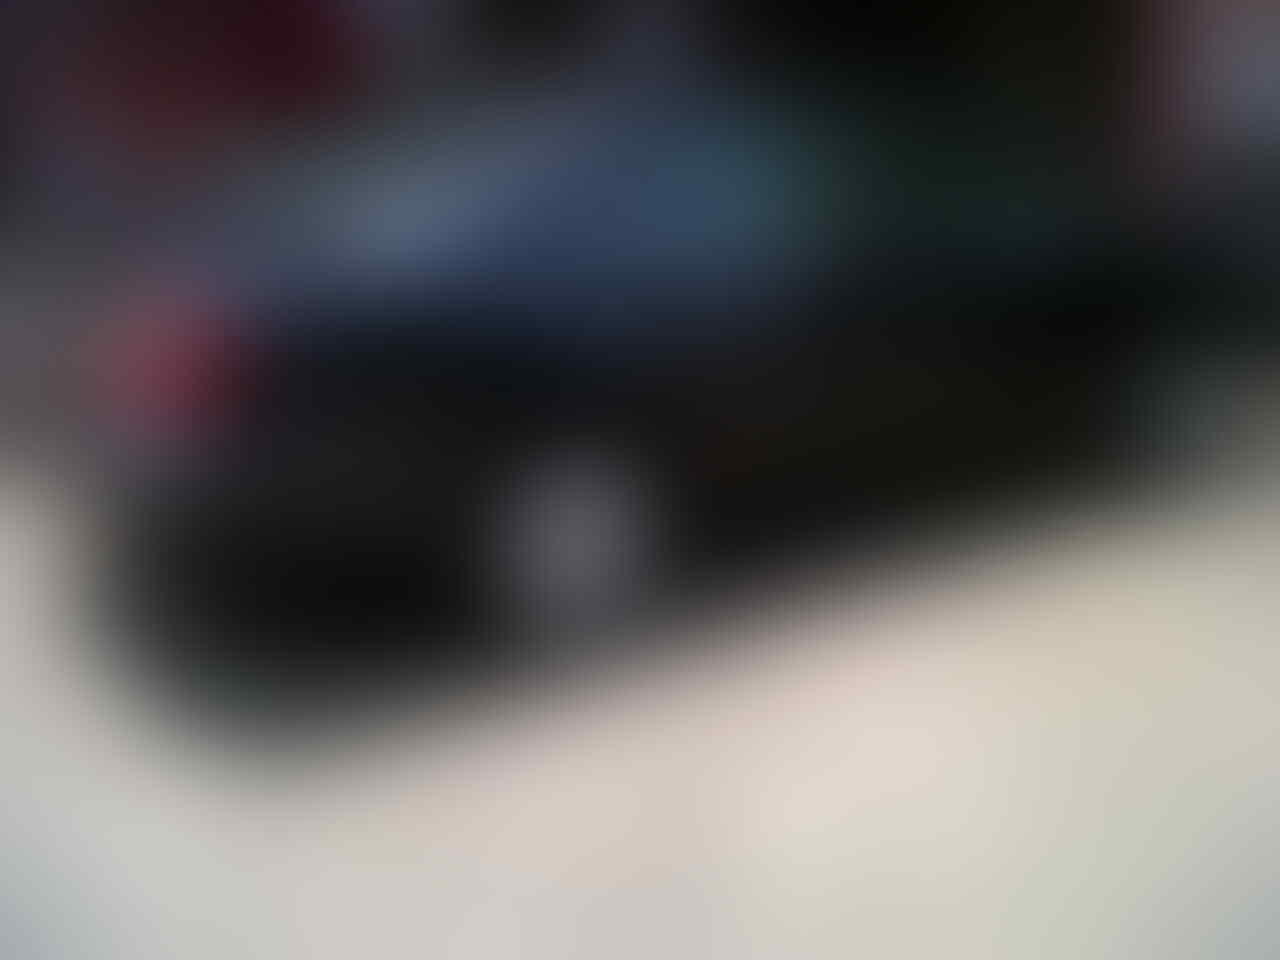 Toyota Camry G 2.4 Matic Thn 2003 Black Good Condition